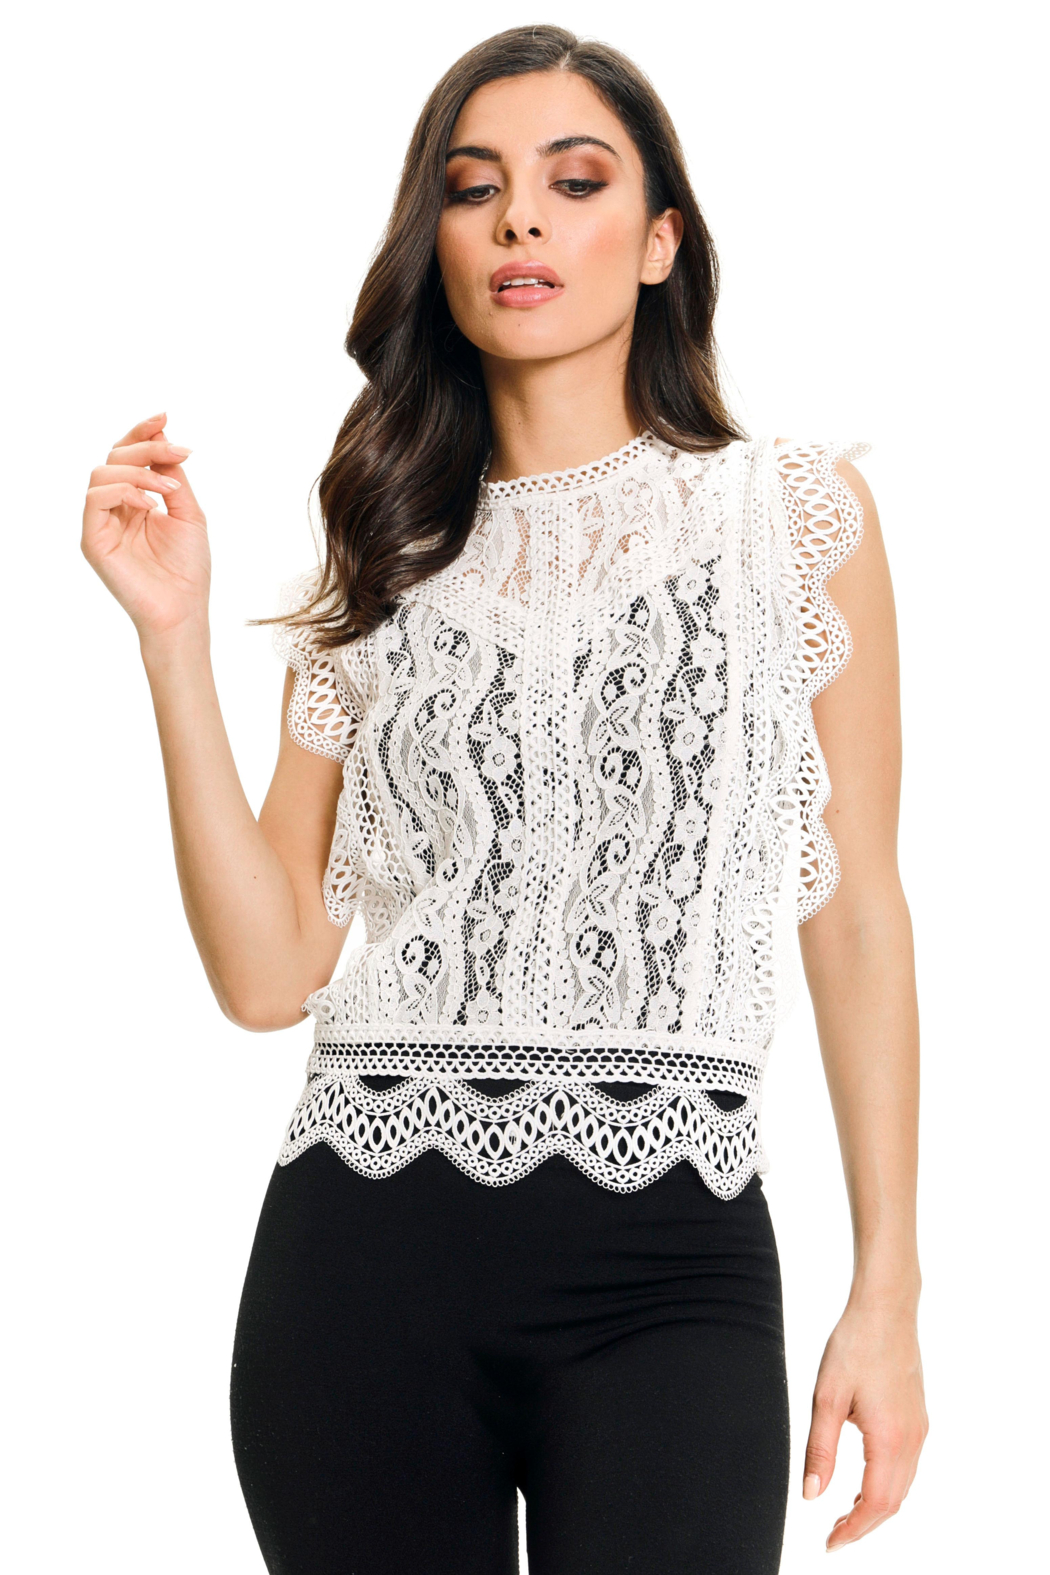 Adore White Lace Top - Main Image